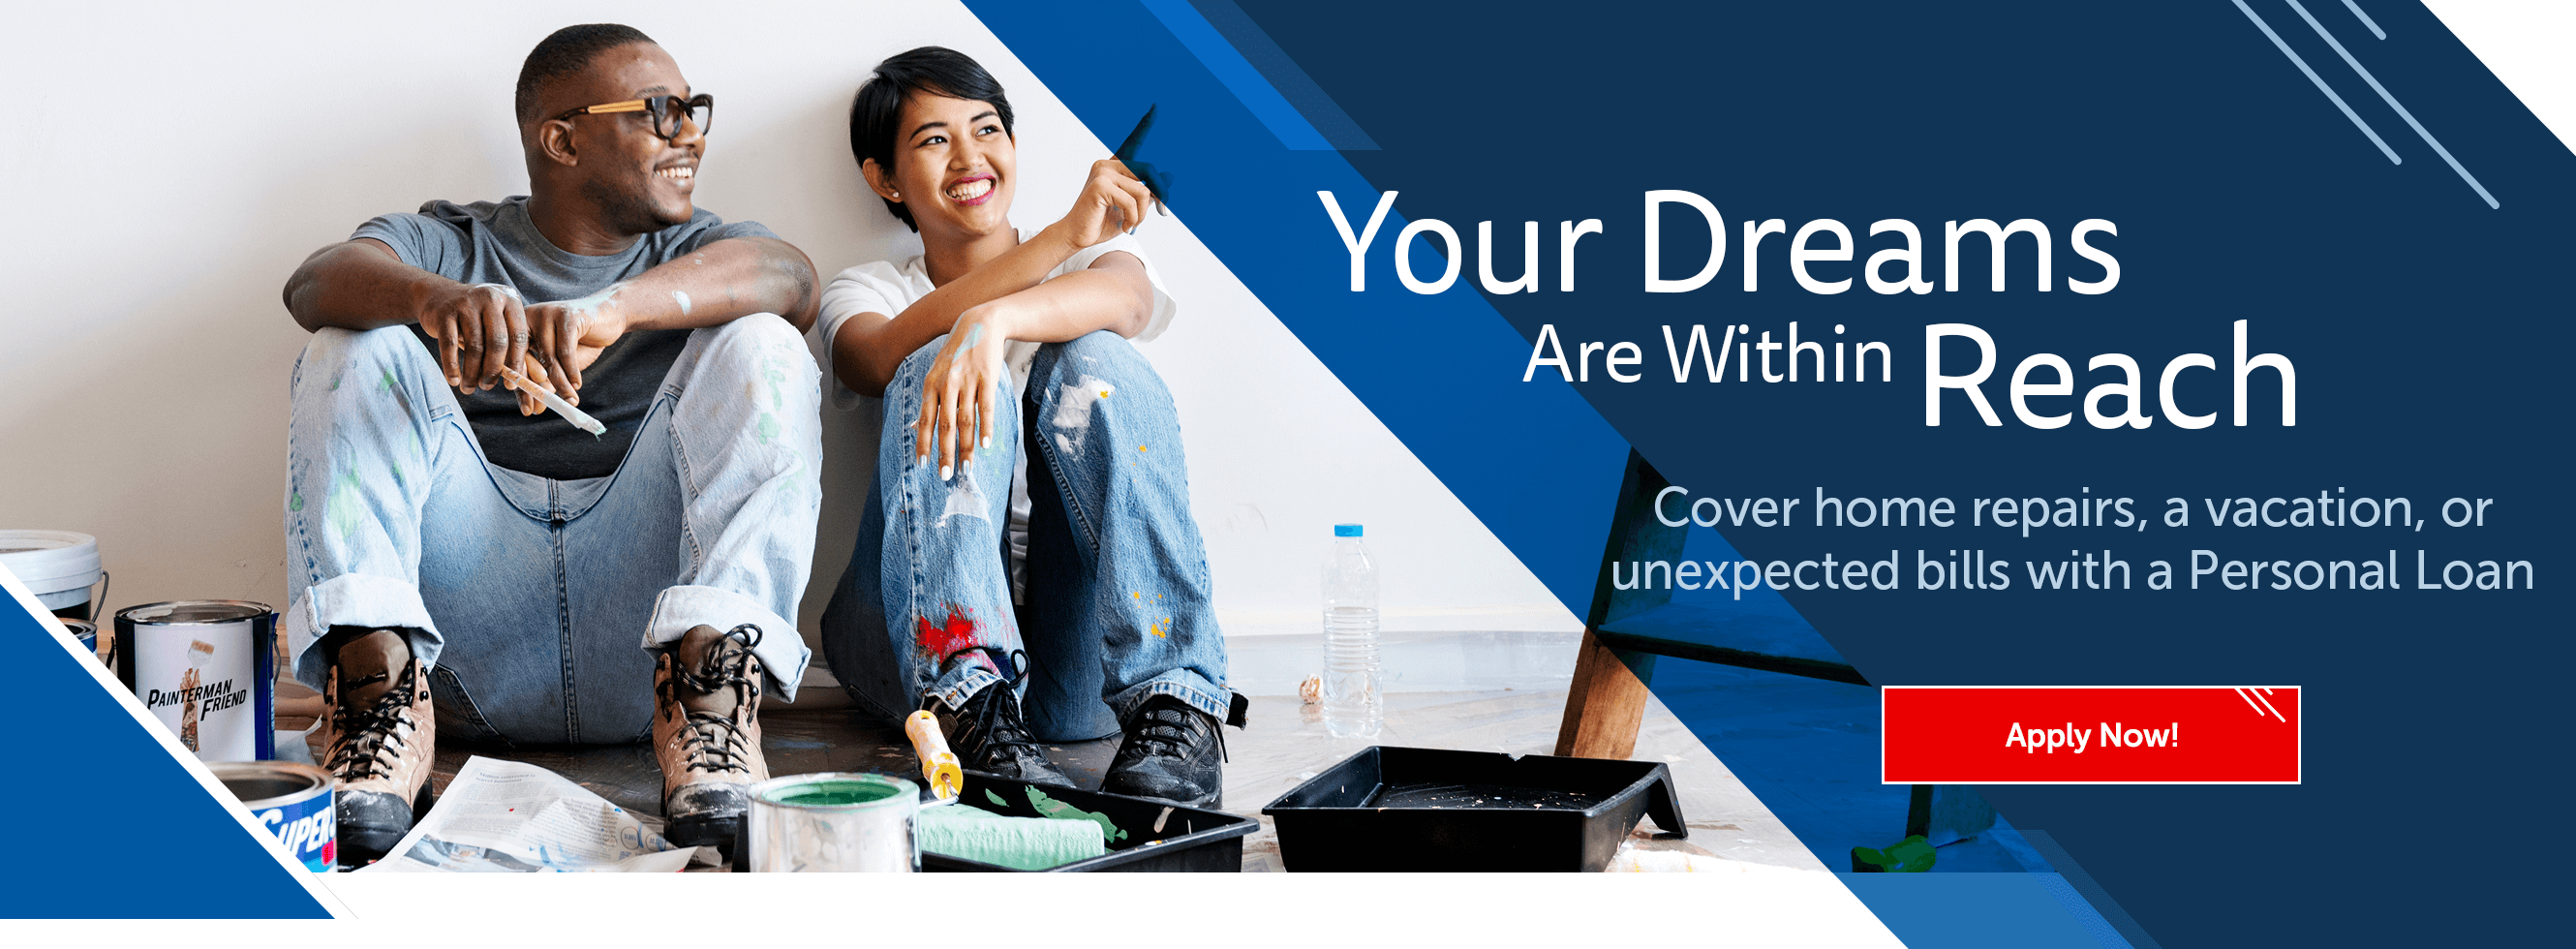 Your Dreams Are Within Reach. Cover home repairs, a vacation, or unexpected bills with a Personal Loan. Apply Now!